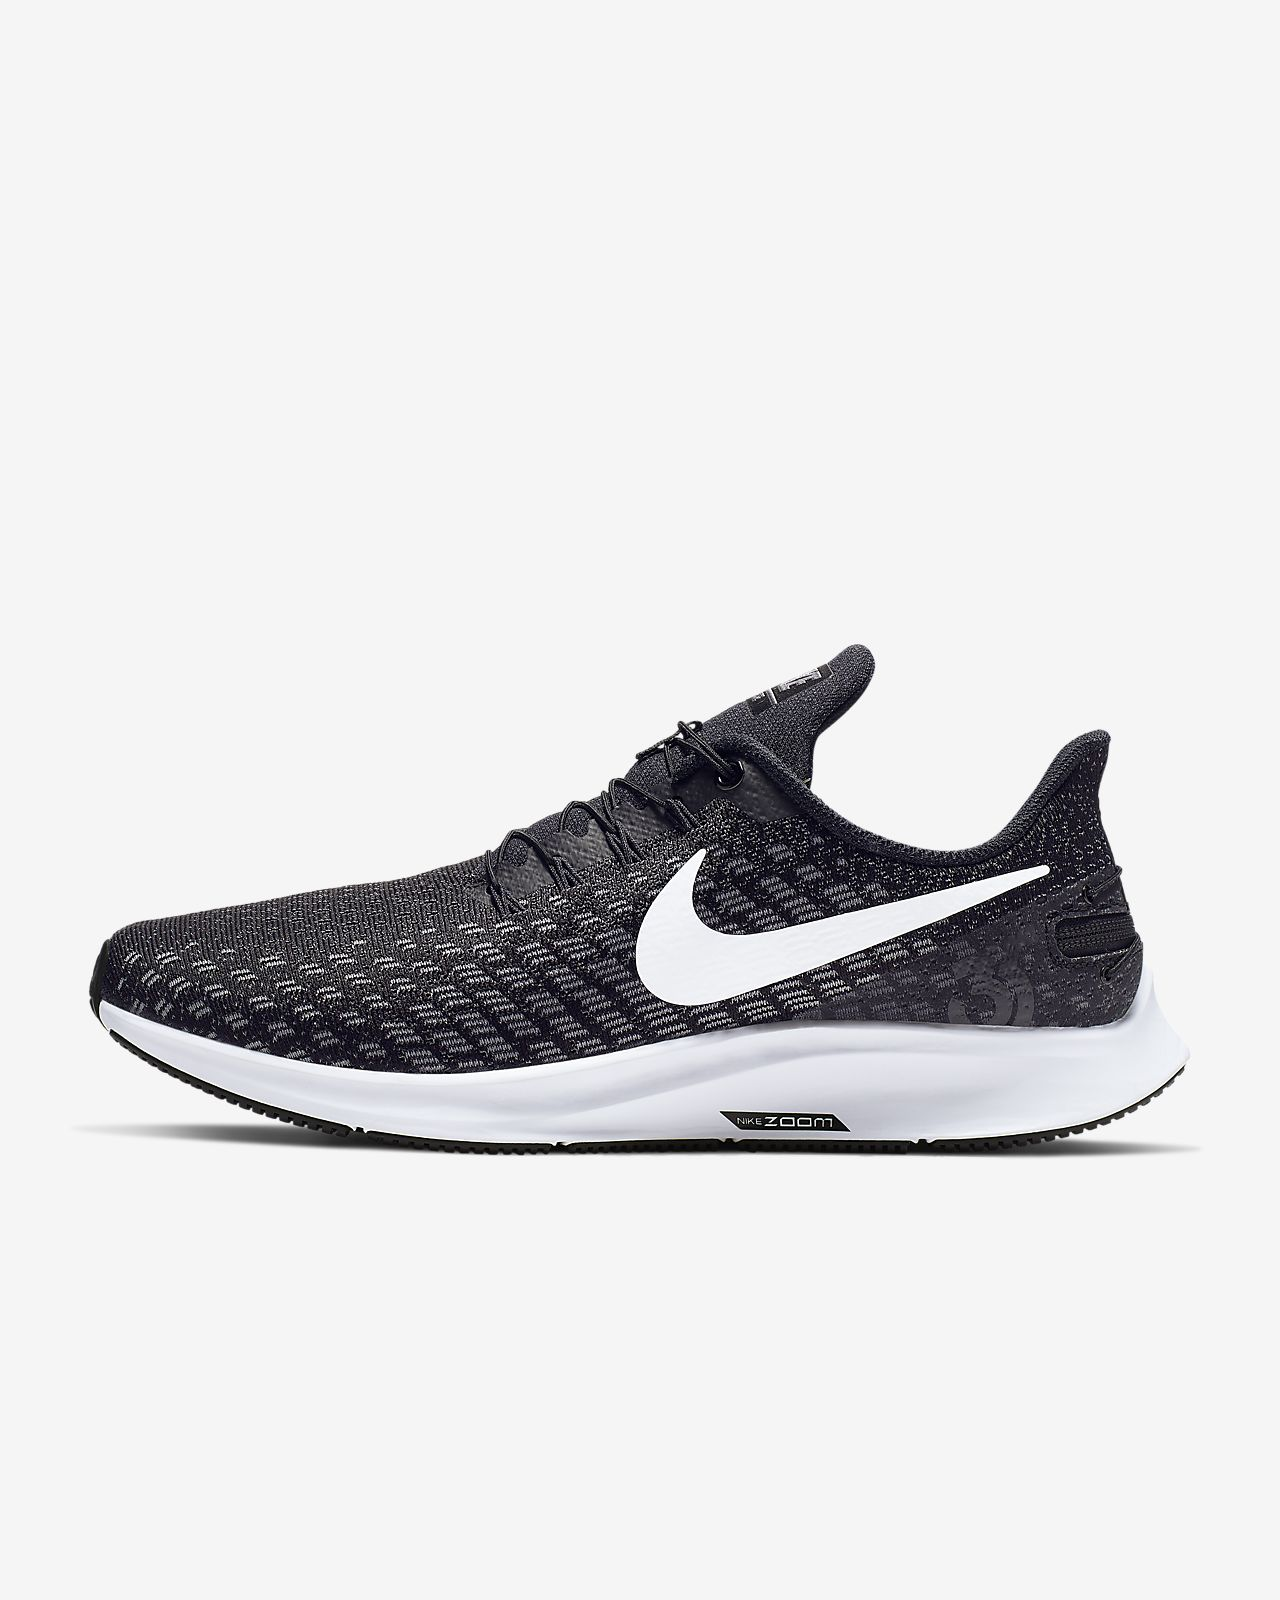 Nike Air Zoom Pegasus 35 FlyEase Women's Running Shoe